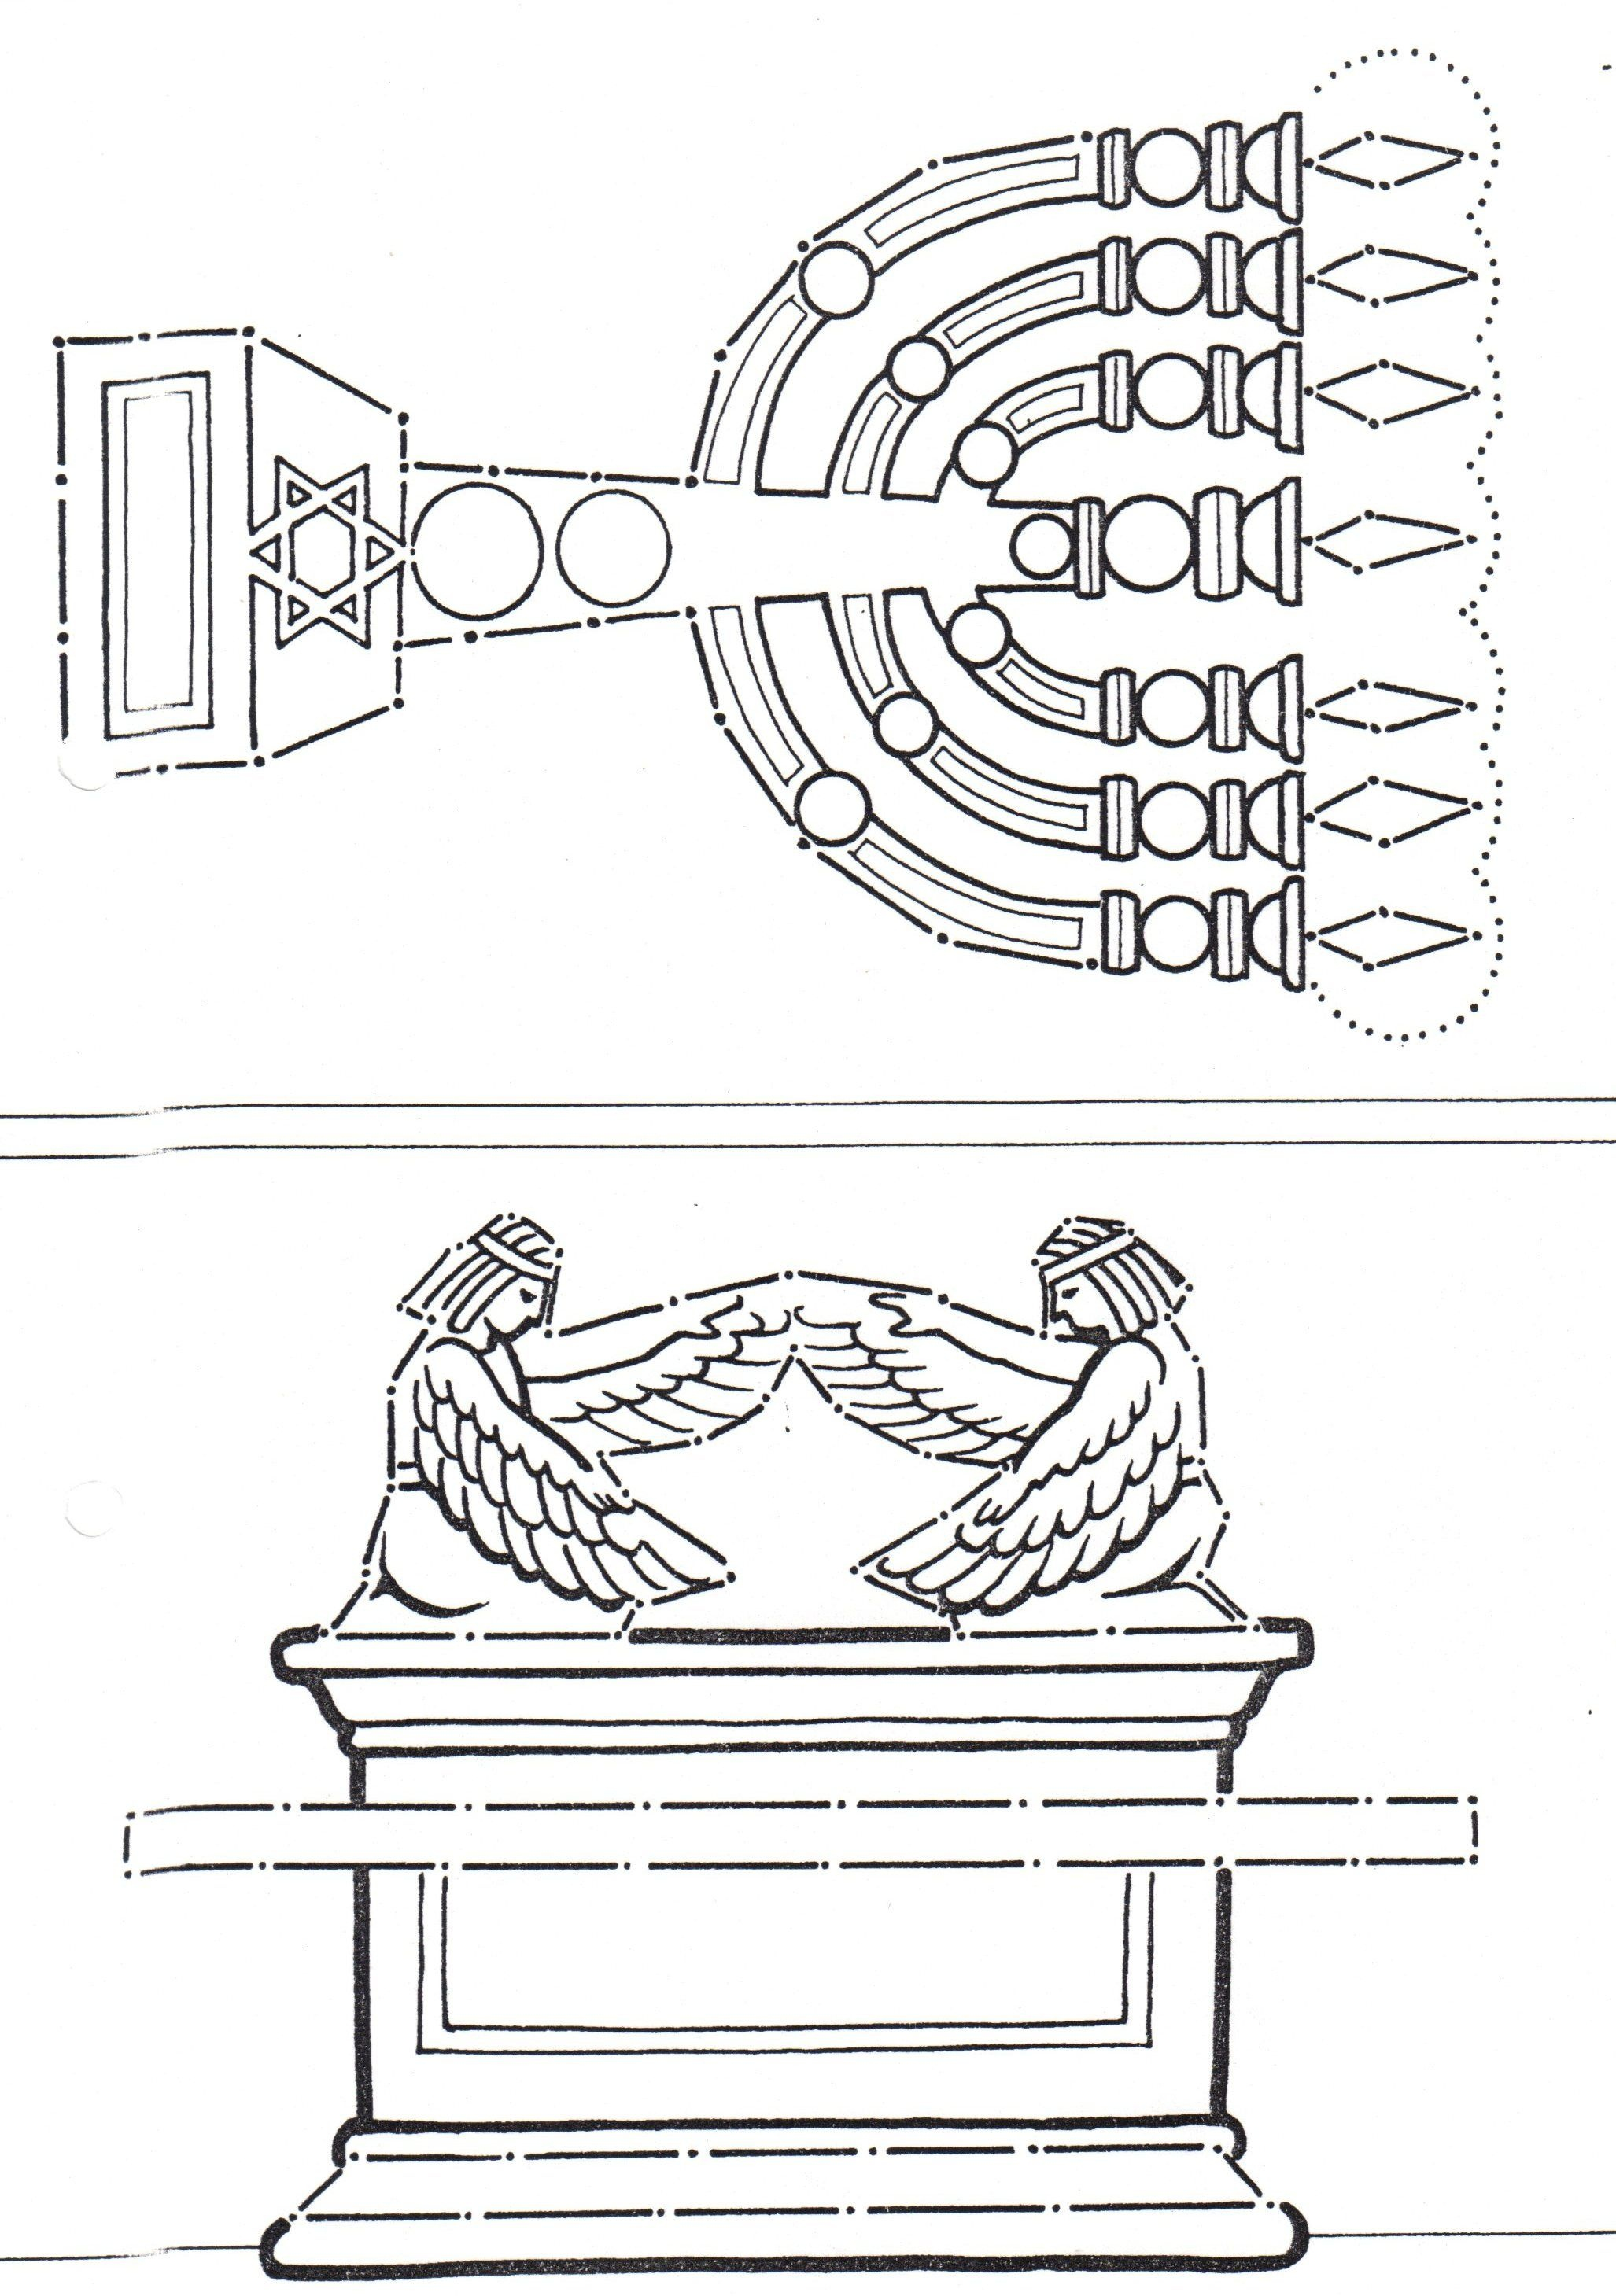 Ark Of Covenant And Lampstand From The Tabernacle And Temple - Free Printable Pictures Of The Tabernacle